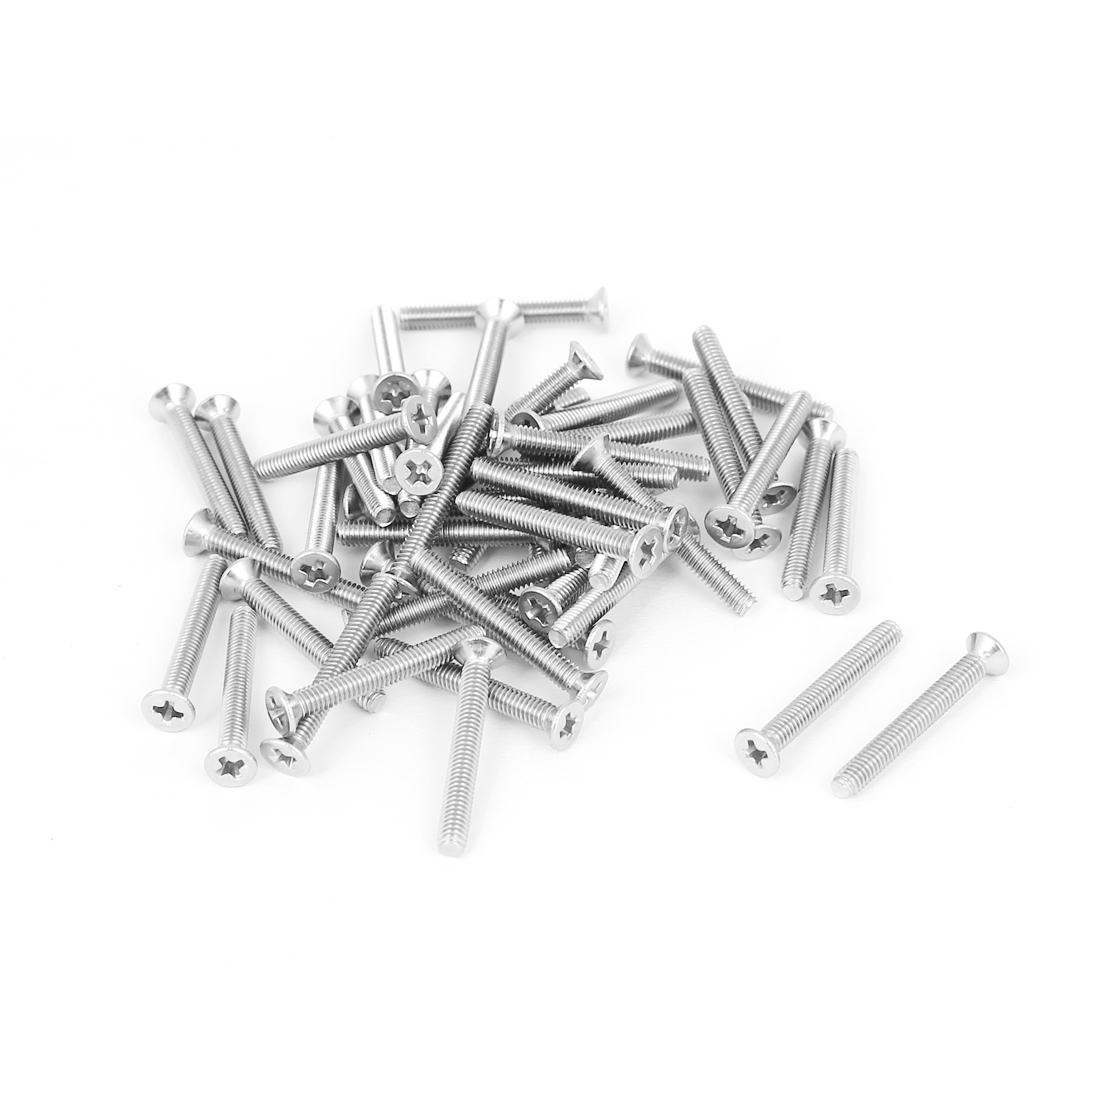 M2.5x20mm Stainless Steel Phillips Flat Countersunk Head Screws 50pcs